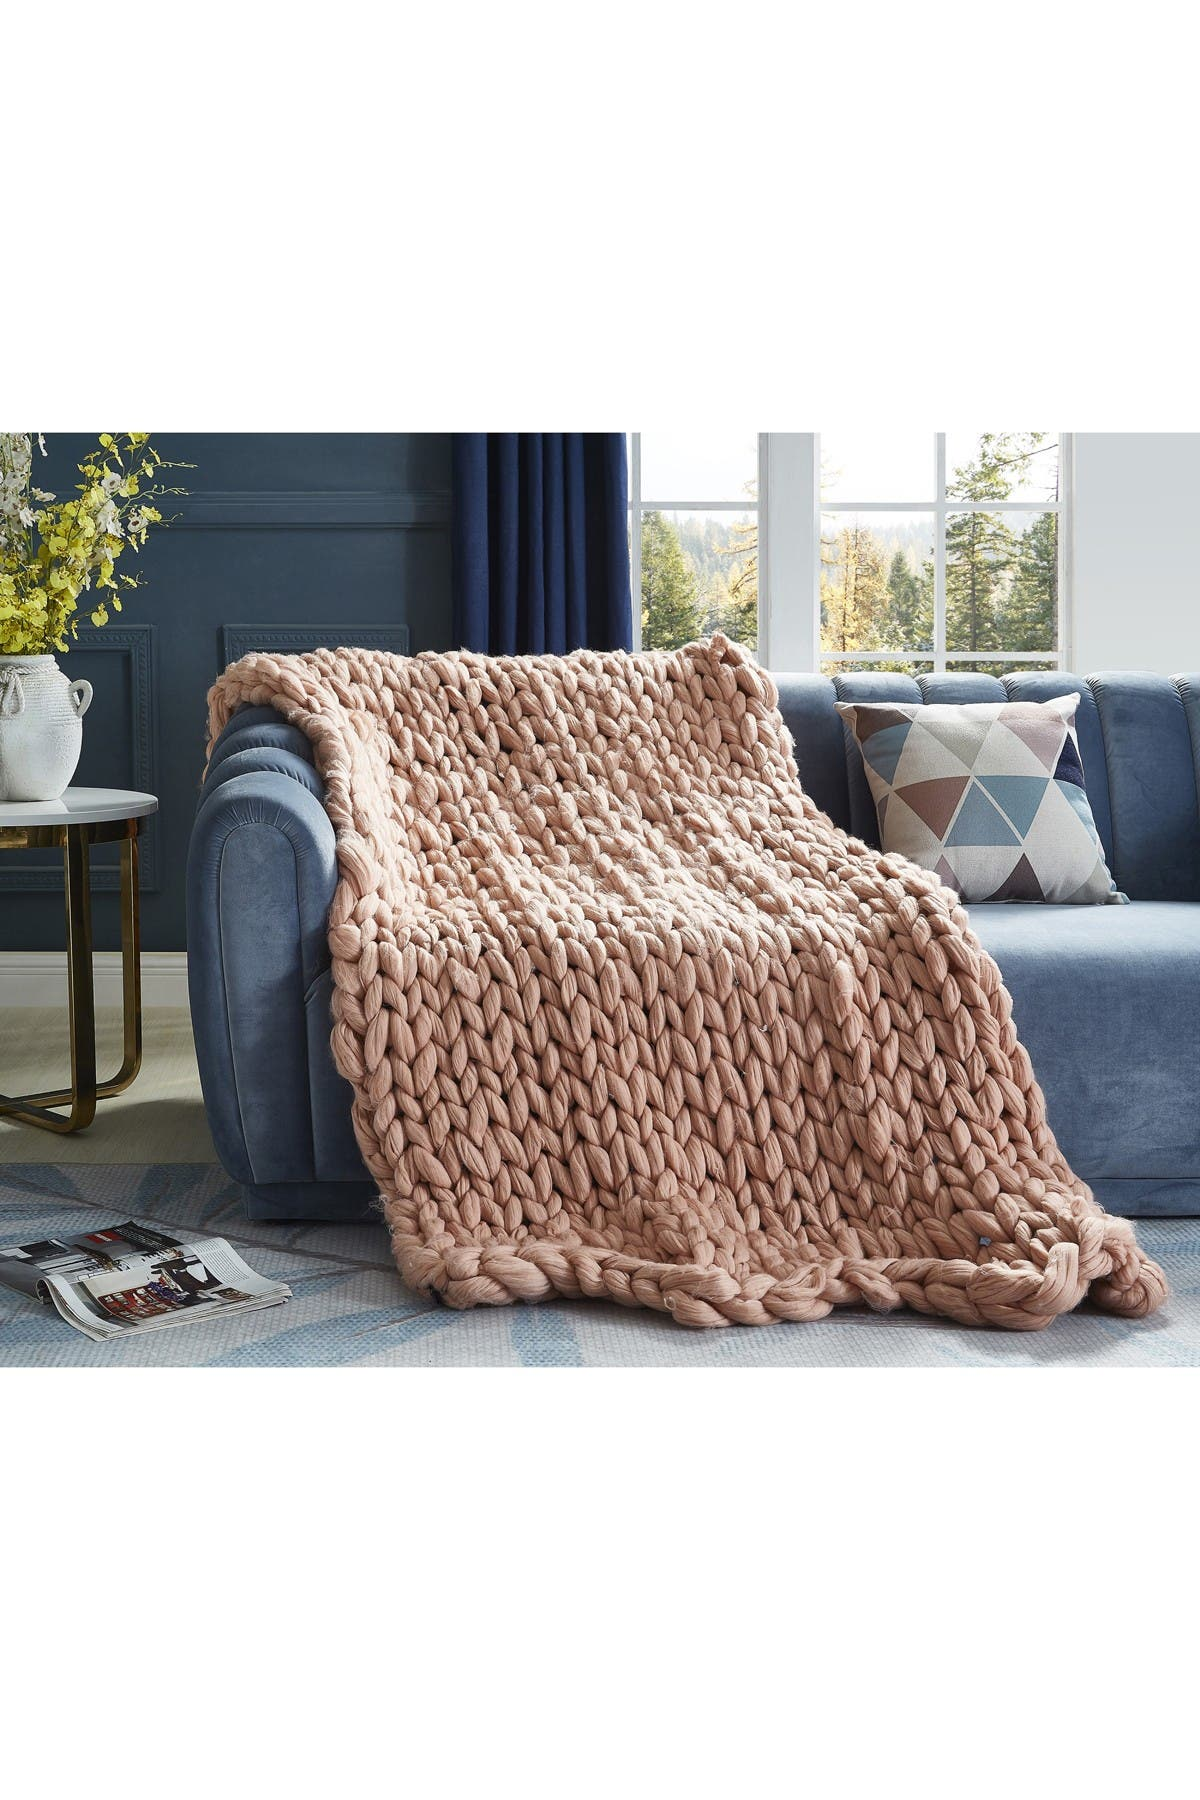 """Image of Inspired Home Cozy Tyme Mantisa Chunky Knit Throw 50"""" x 70"""" - Blush"""